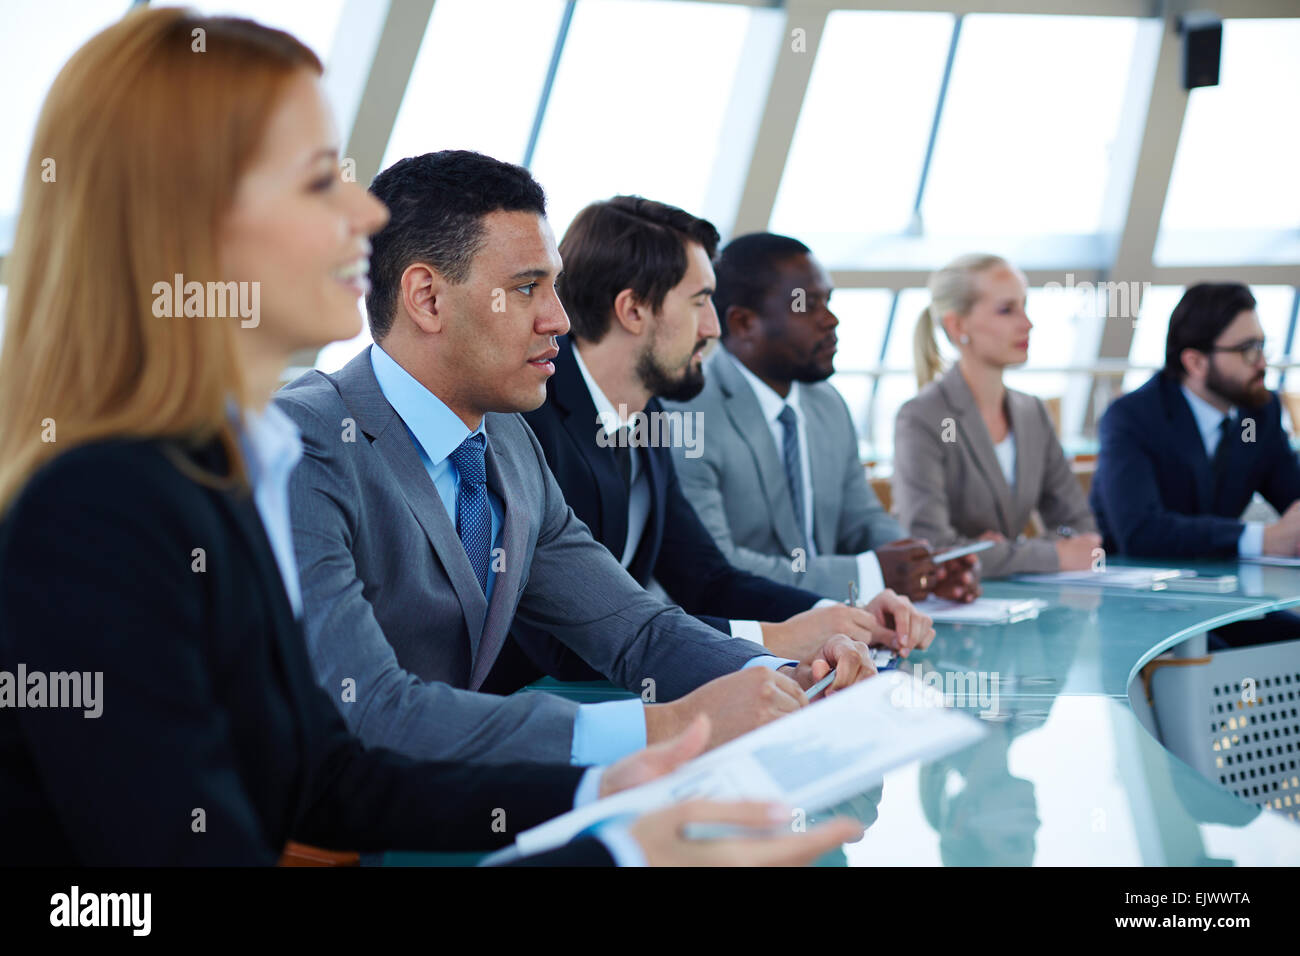 Row of serious business people attending seminar - Stock Image